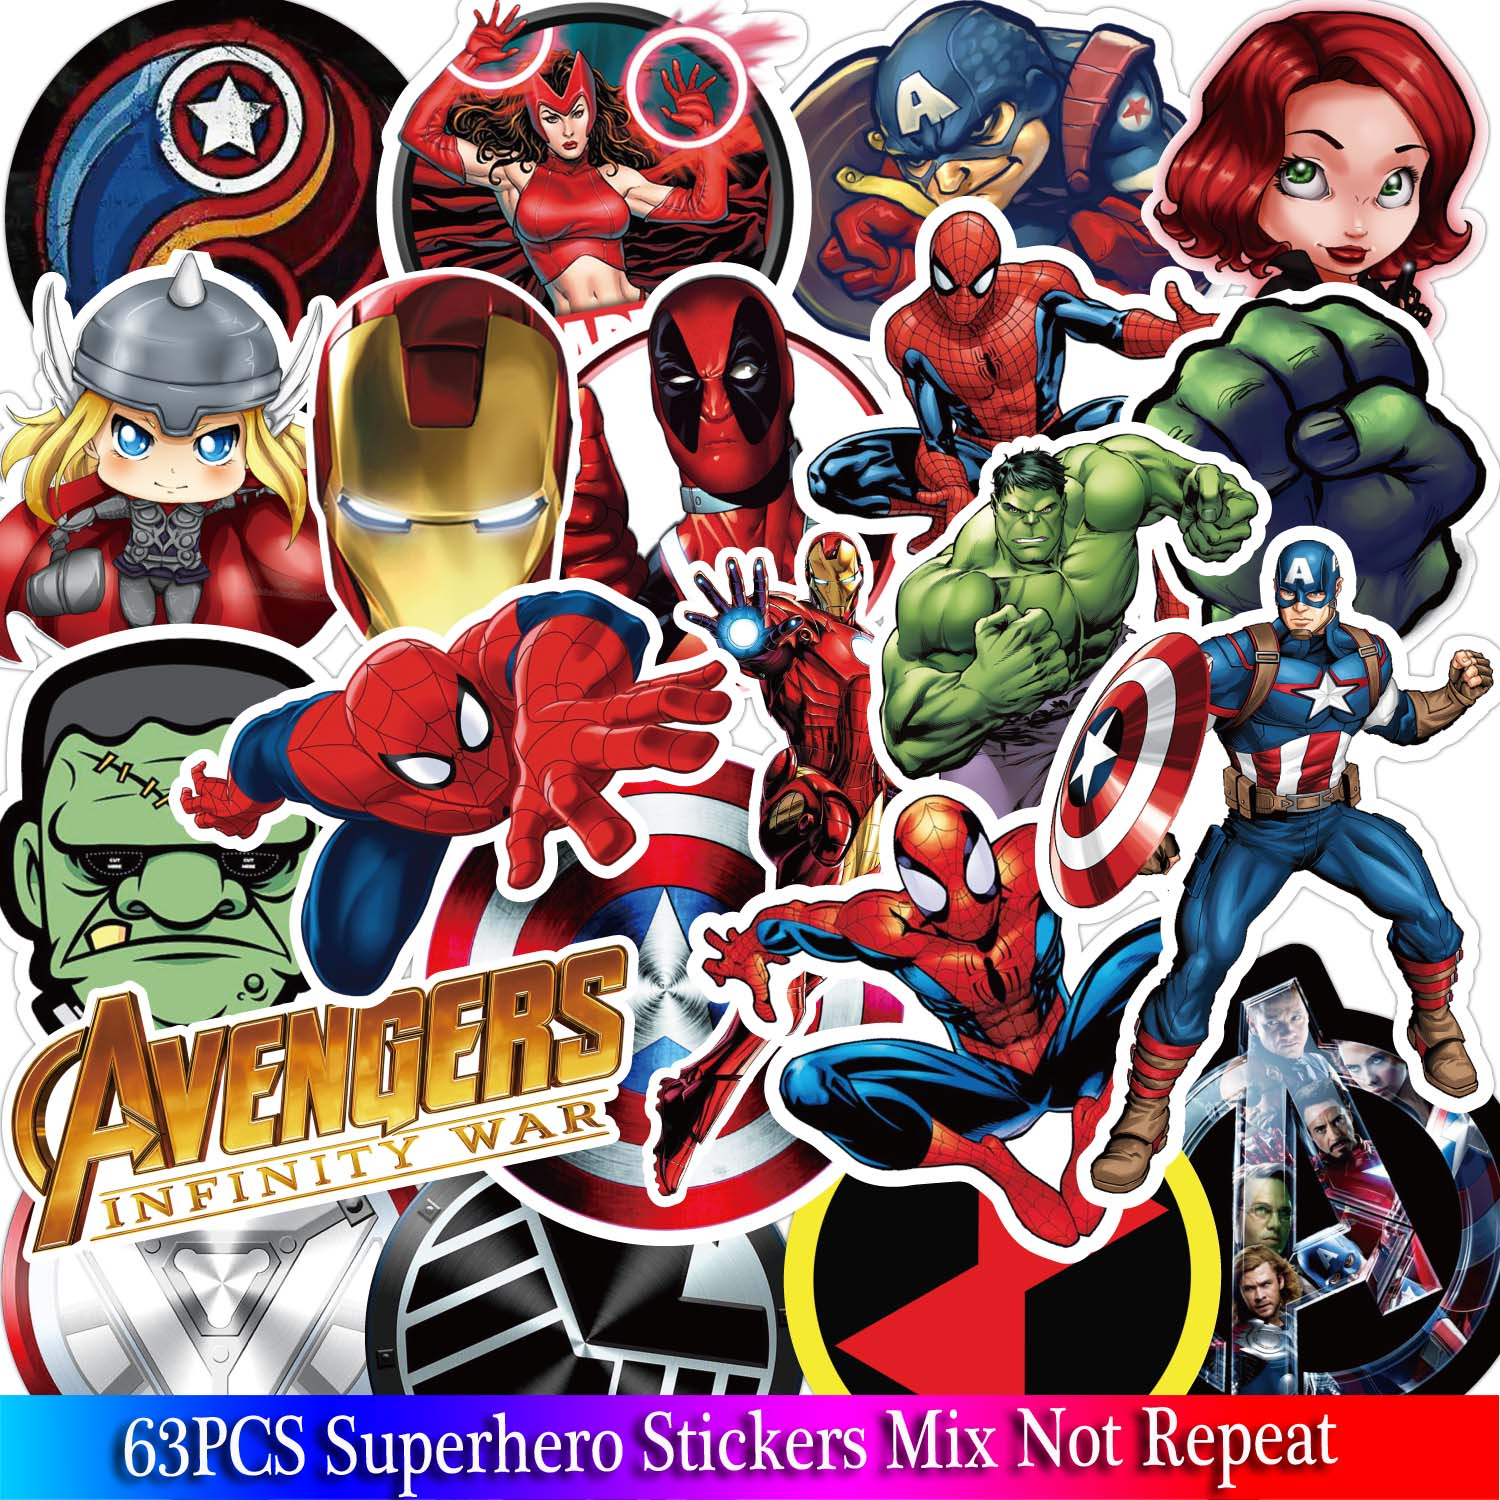 63PCS Marvel The Avengers Super Hero Stickers Pattern Sticker For Skateboard Guitar Luggage Motorcycle Car Phone Laptop Sticker